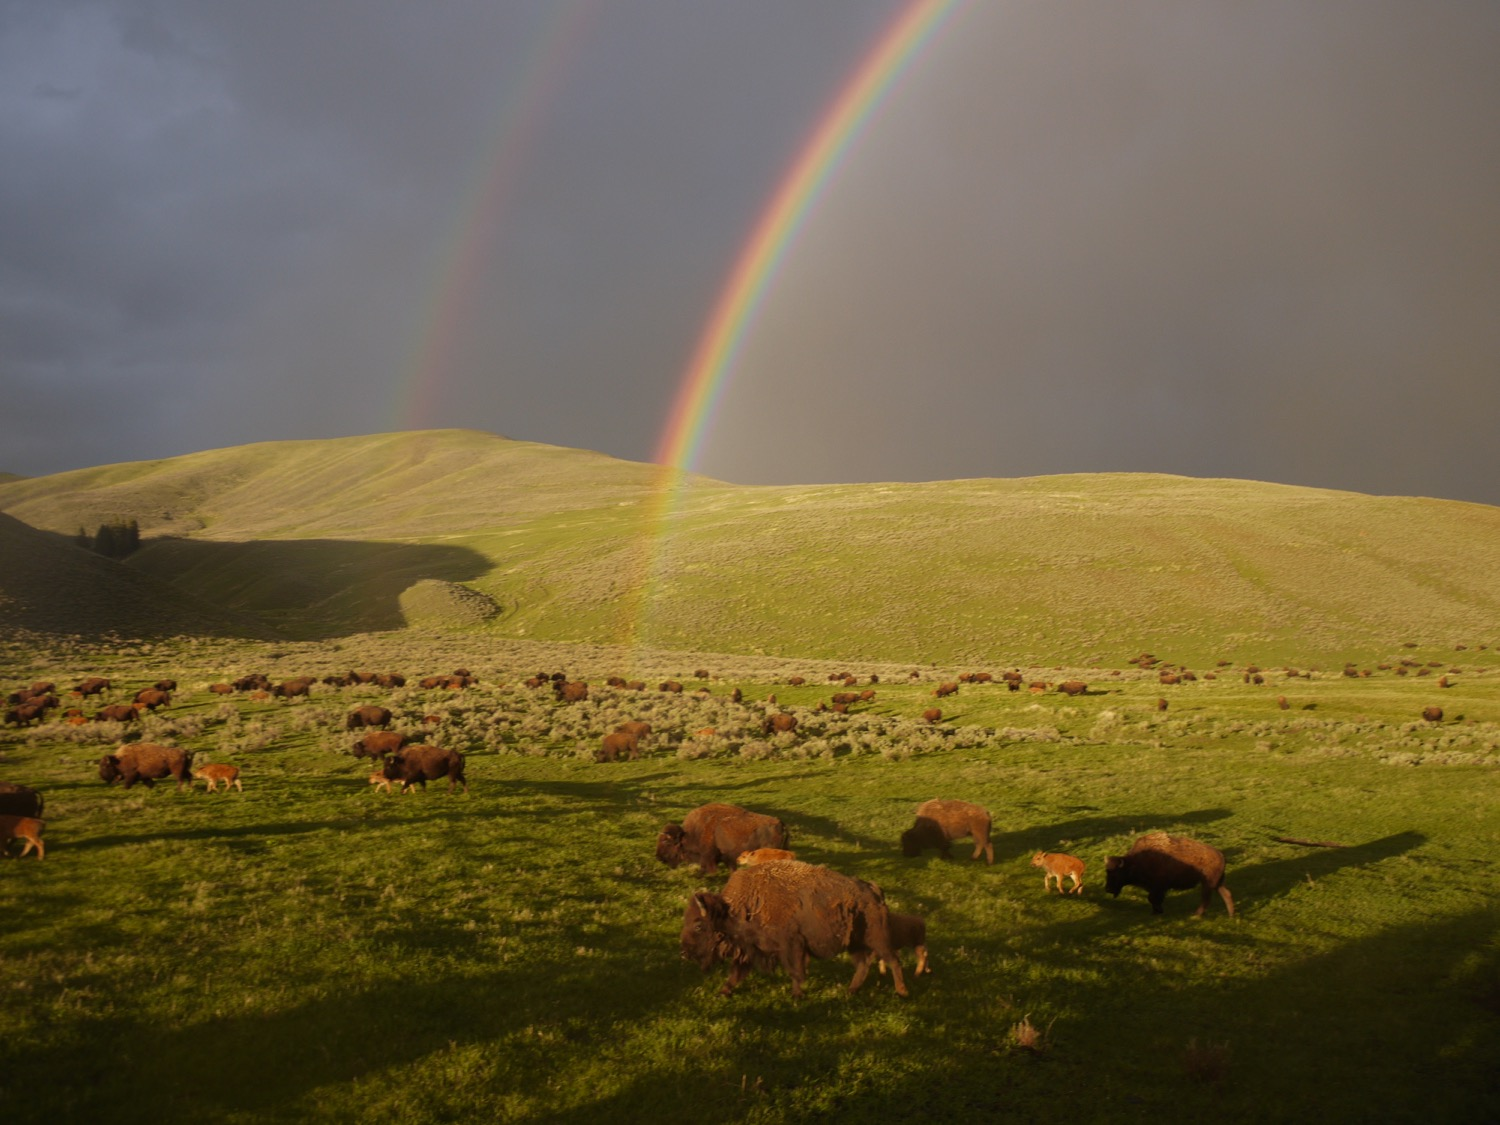 Bison graze in the Lamar Valley, Yellowstone National Park. Photo by Emily Stifler Wolfe